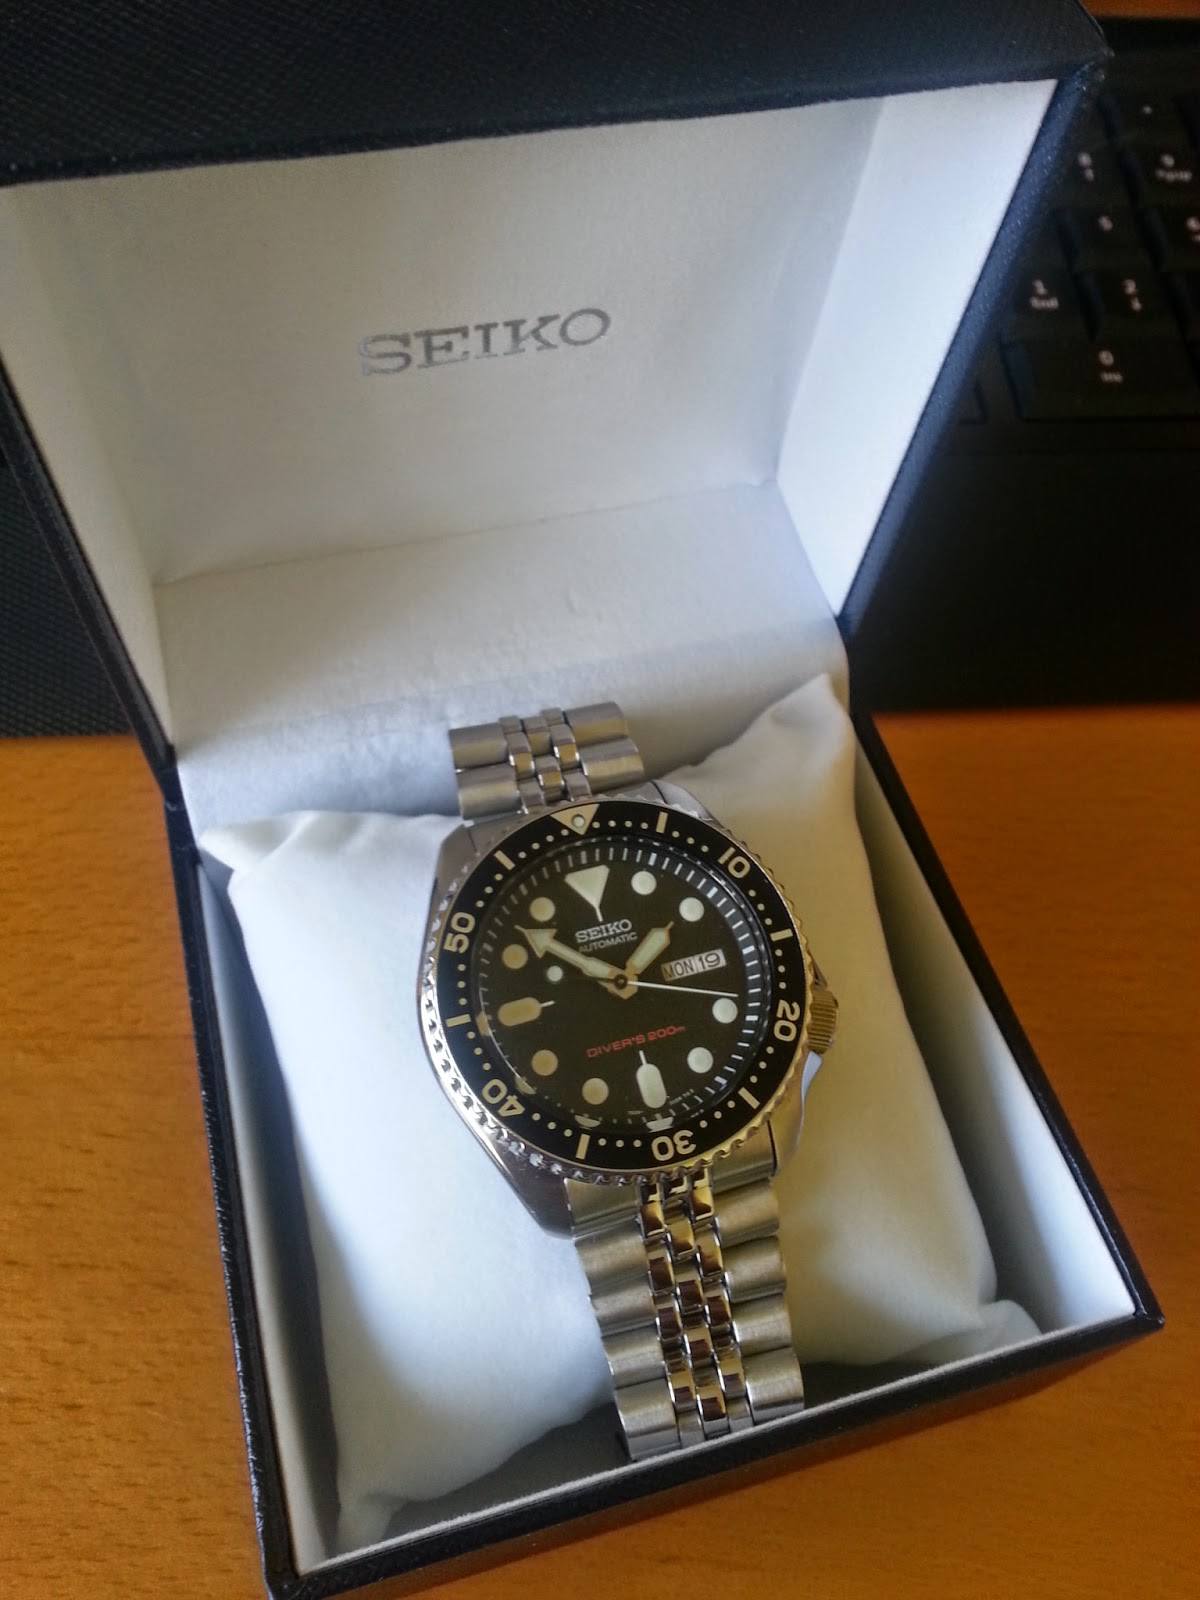 snzg watches worn sport now creation wound seiko review